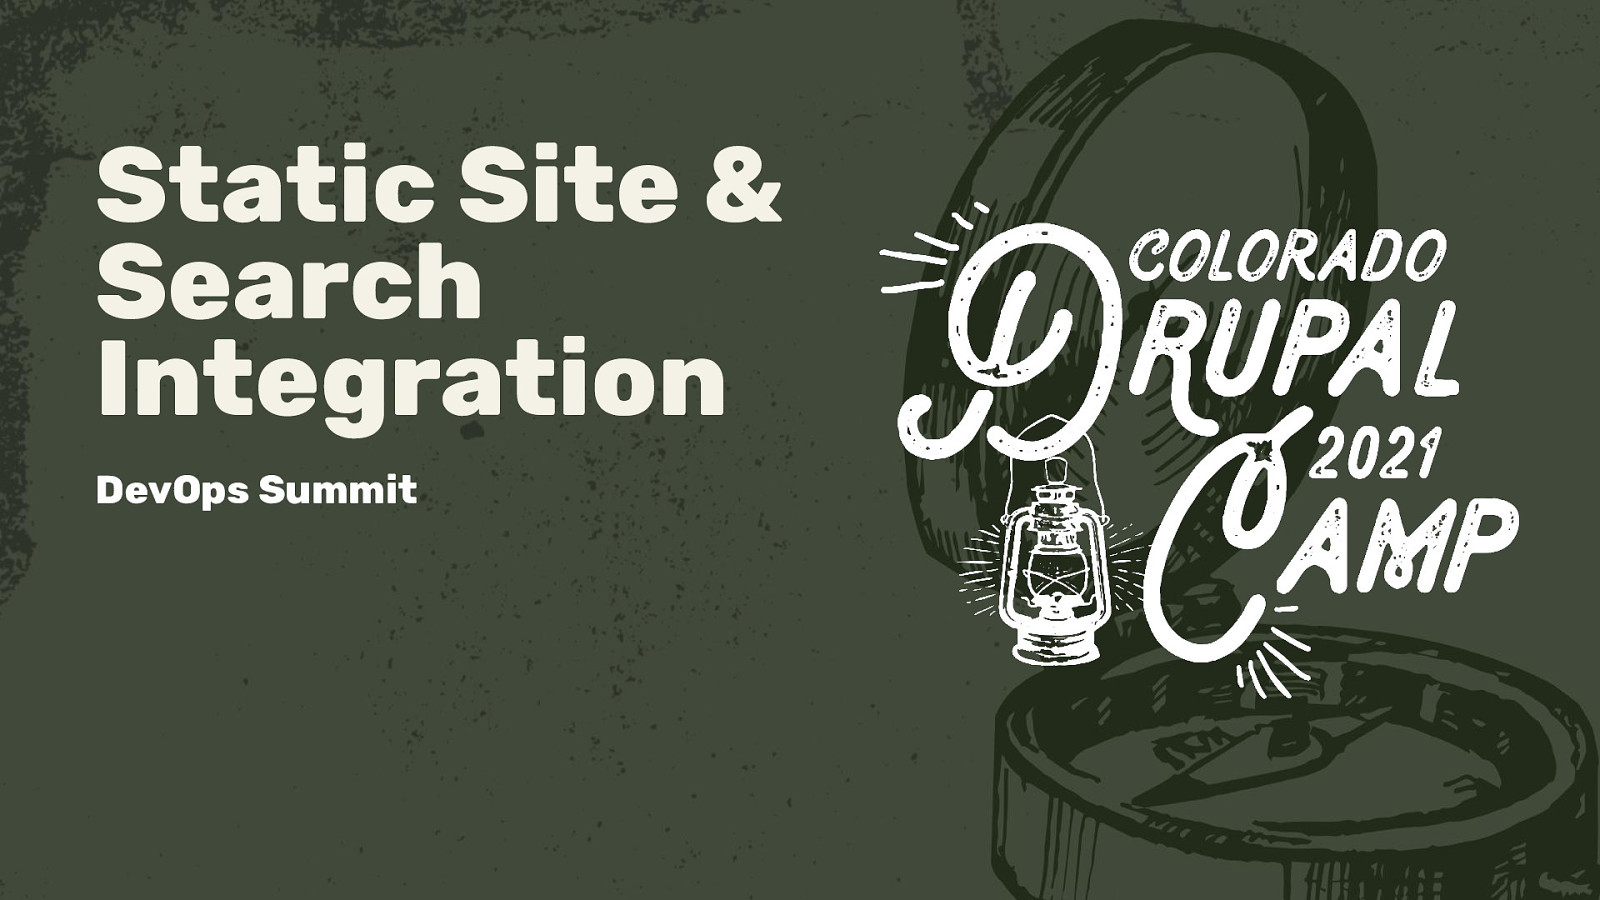 Static Site and Search Integration